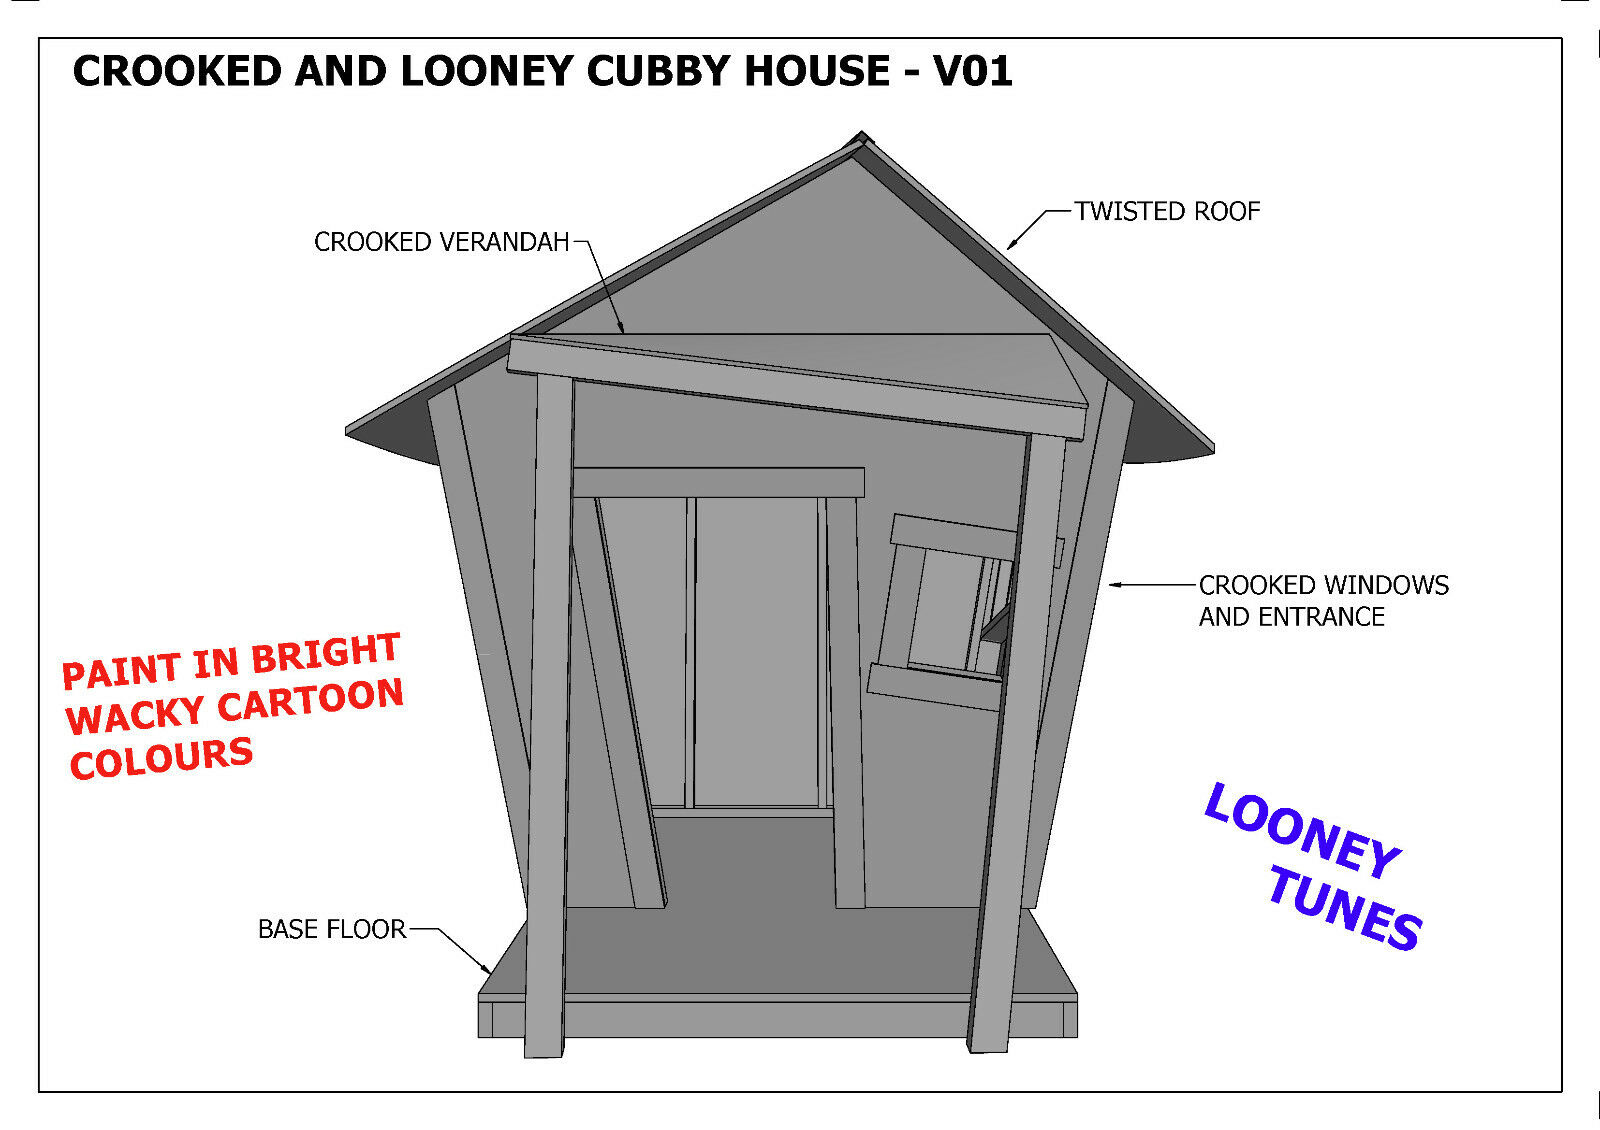 Crooked house plans crooked cubby house play house v05 for Crooked house plans